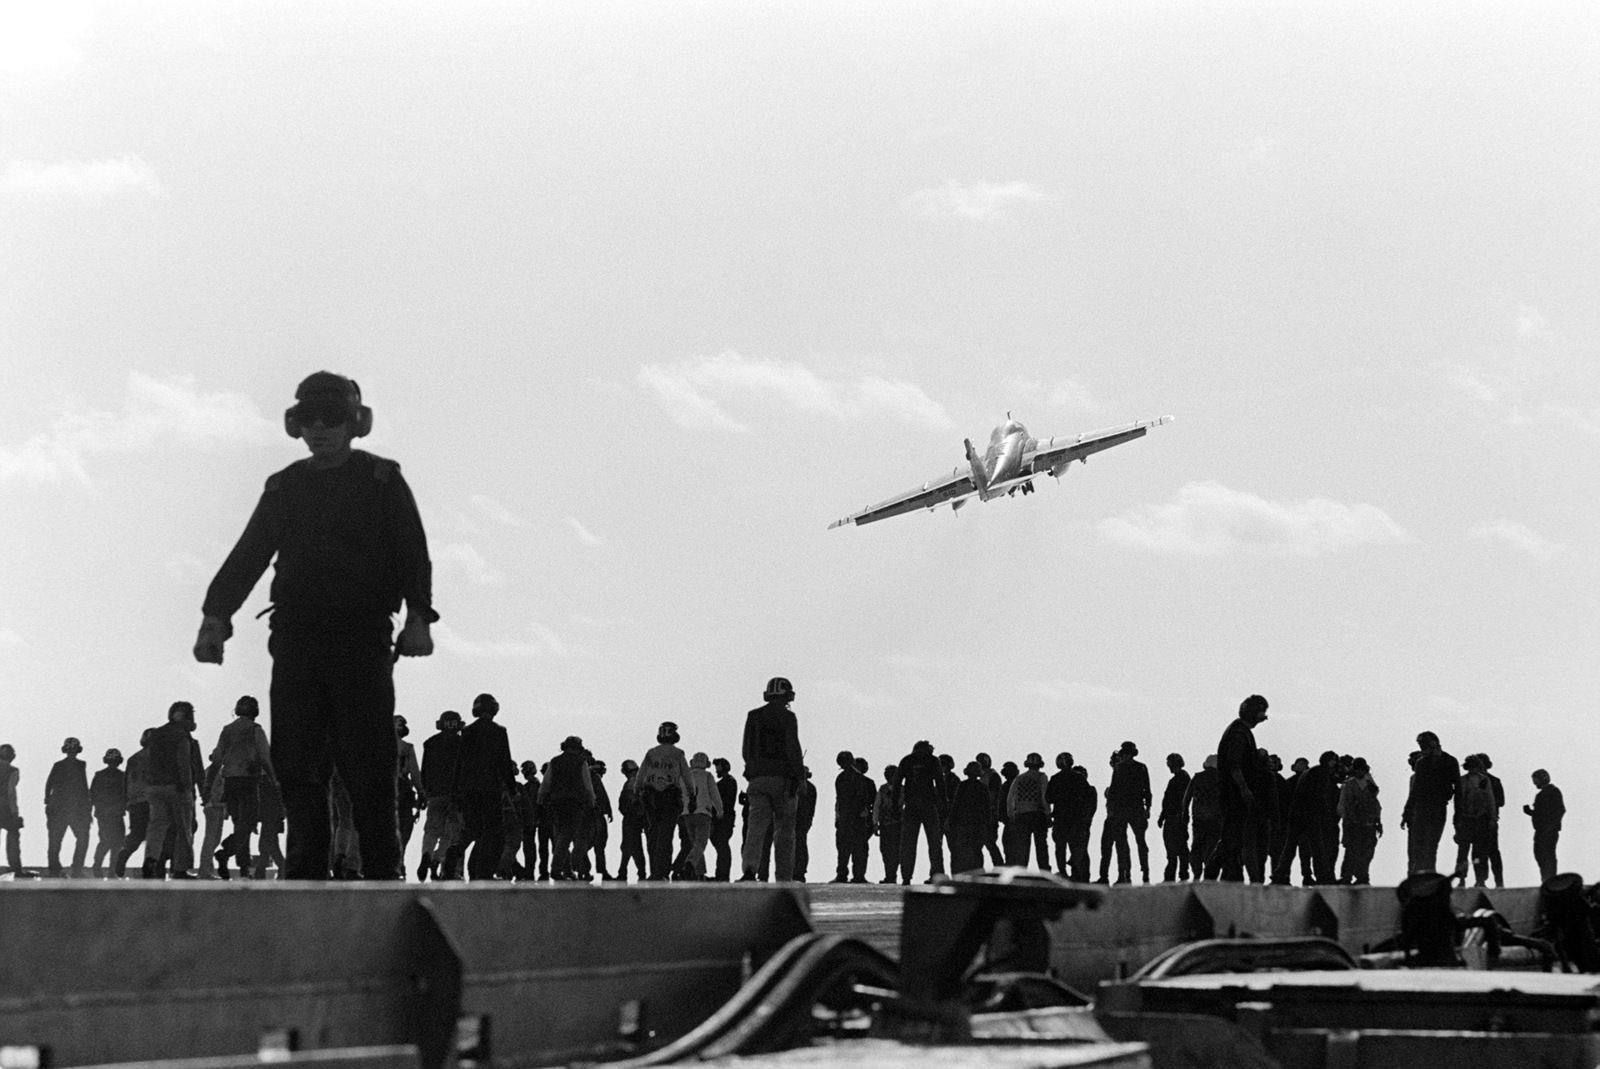 A silhouetted view of crewmen on the flight deck of the aircraft carrier USS KITTY HAWK (CV 63), as they participate in a search for foreign object damage. Visible in the background is an A-6 Intruder in flight